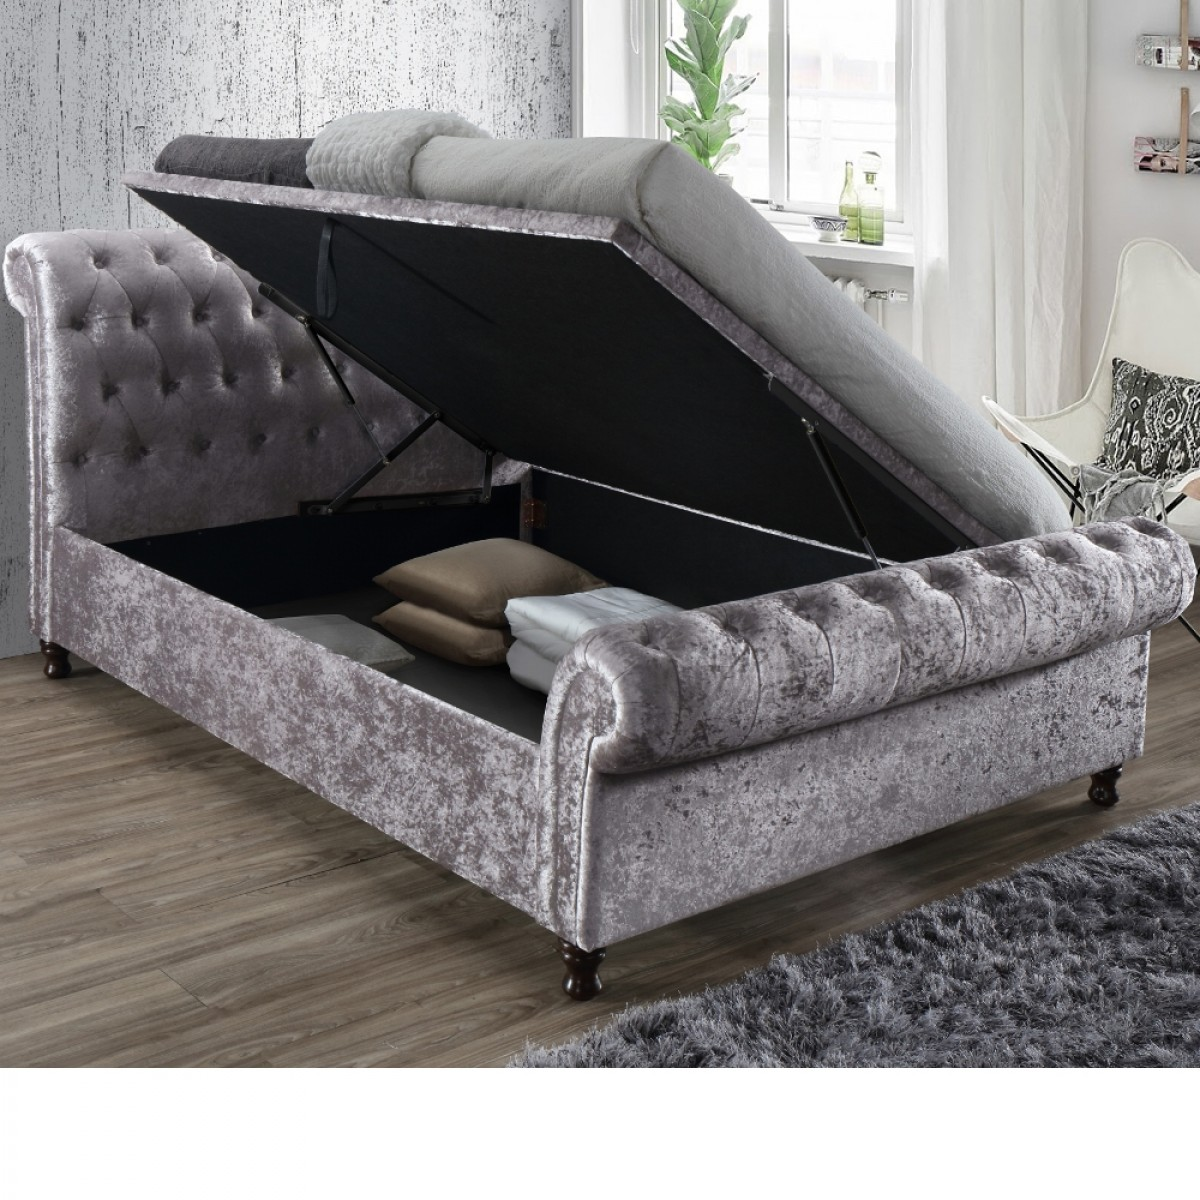 Castello Steel Fabric Ottoman Scroll Sleigh Bed